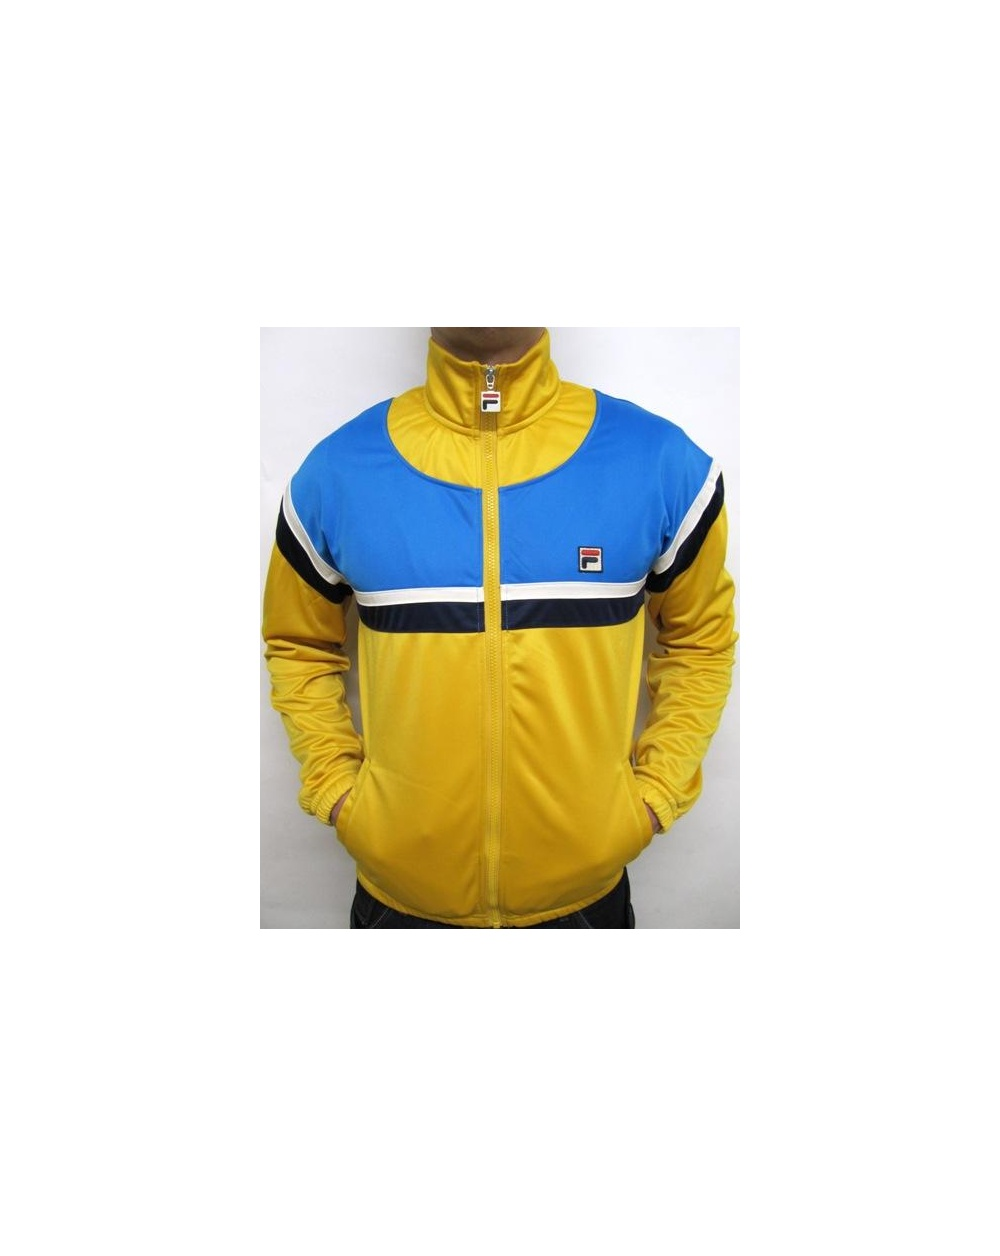 fila yellow top. fila vintage business golf track top yellow/french blue yellow